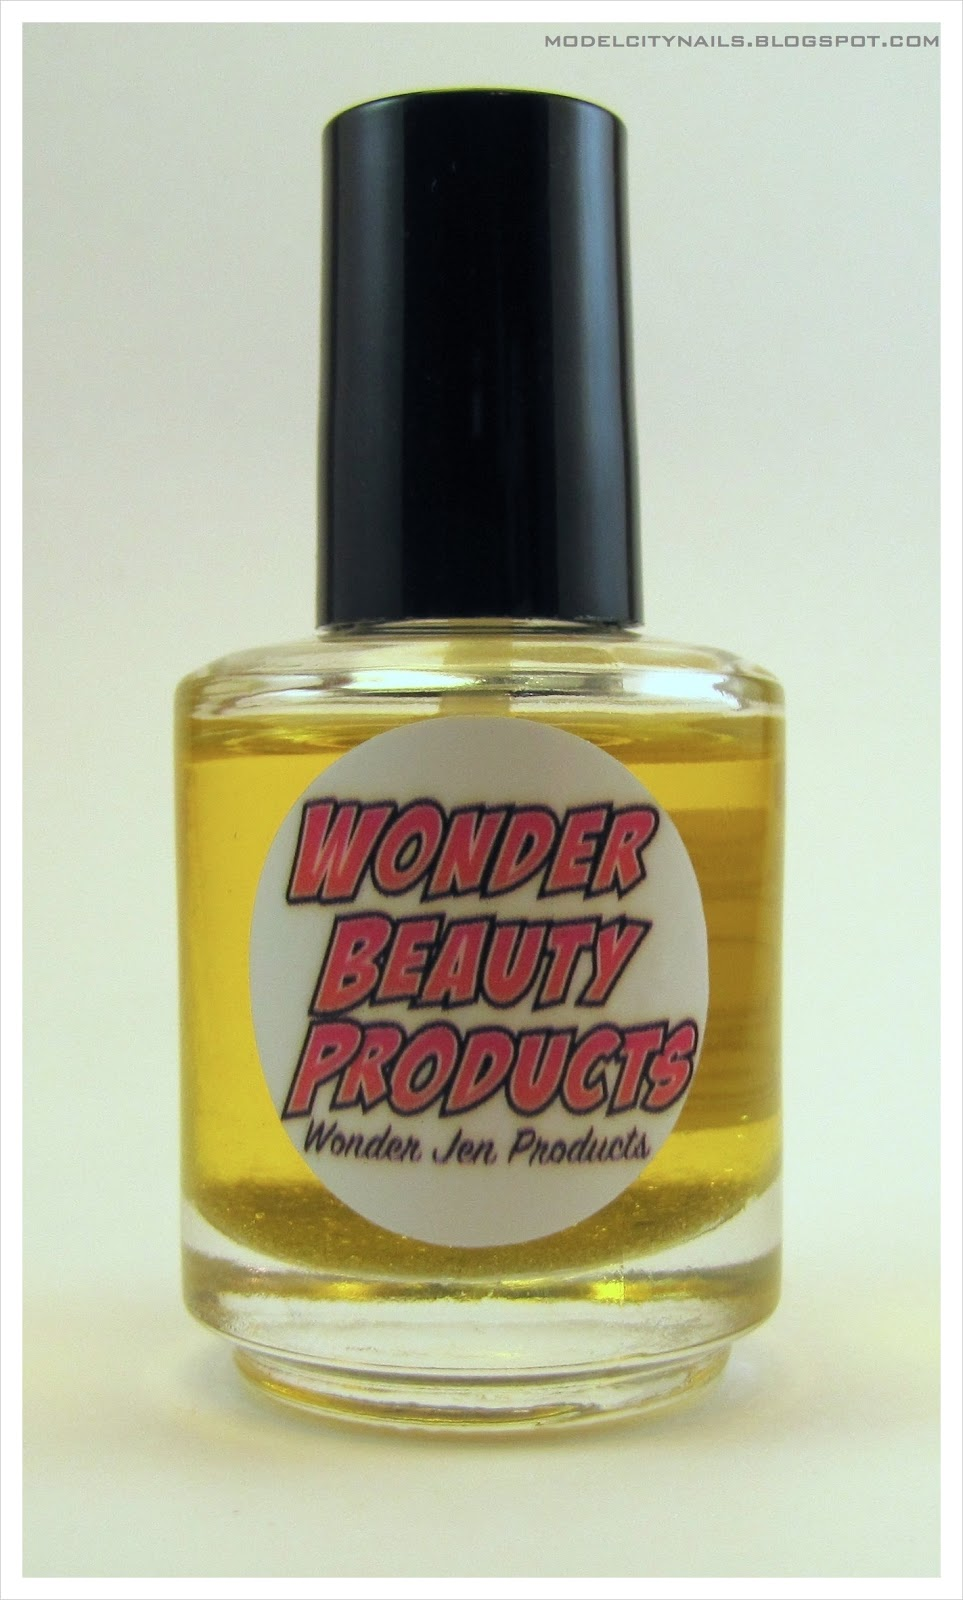 Model City Nails: Wonder Beauty USO Rosie And Cuticle Oil